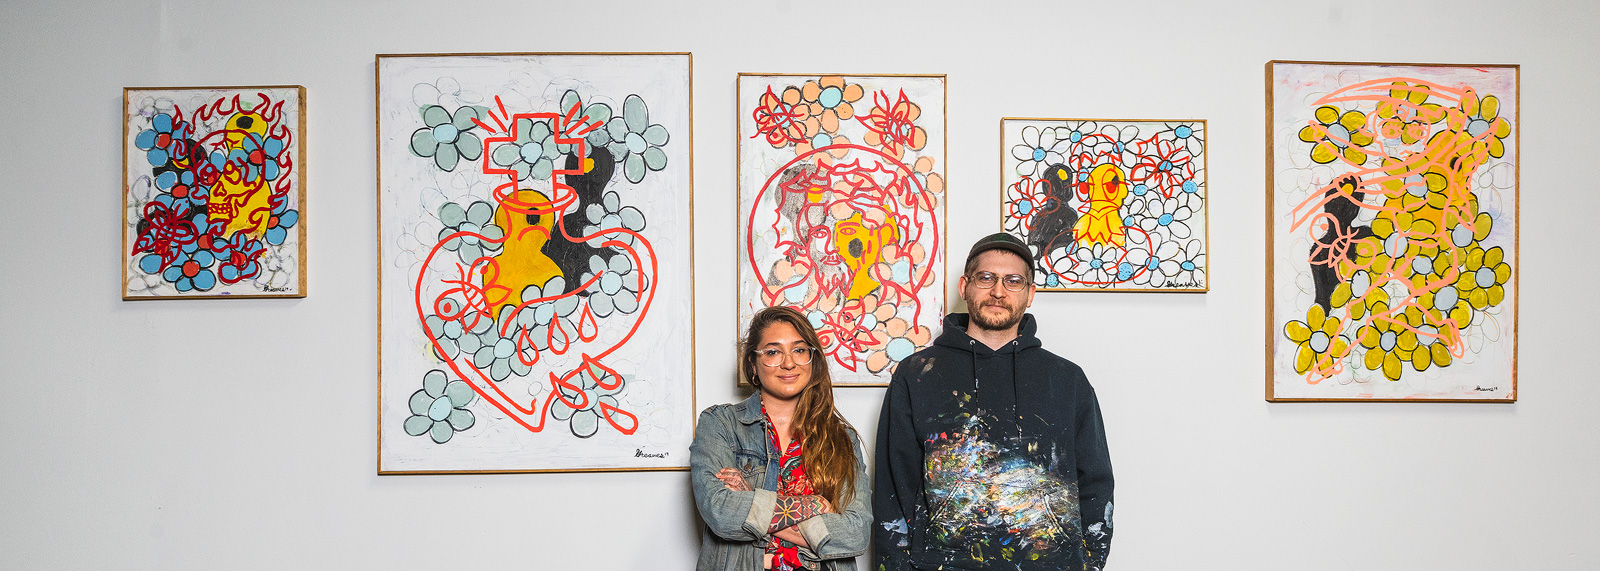 Anya Klapischak with Brennan Greaves and his paintings at The Hosting.